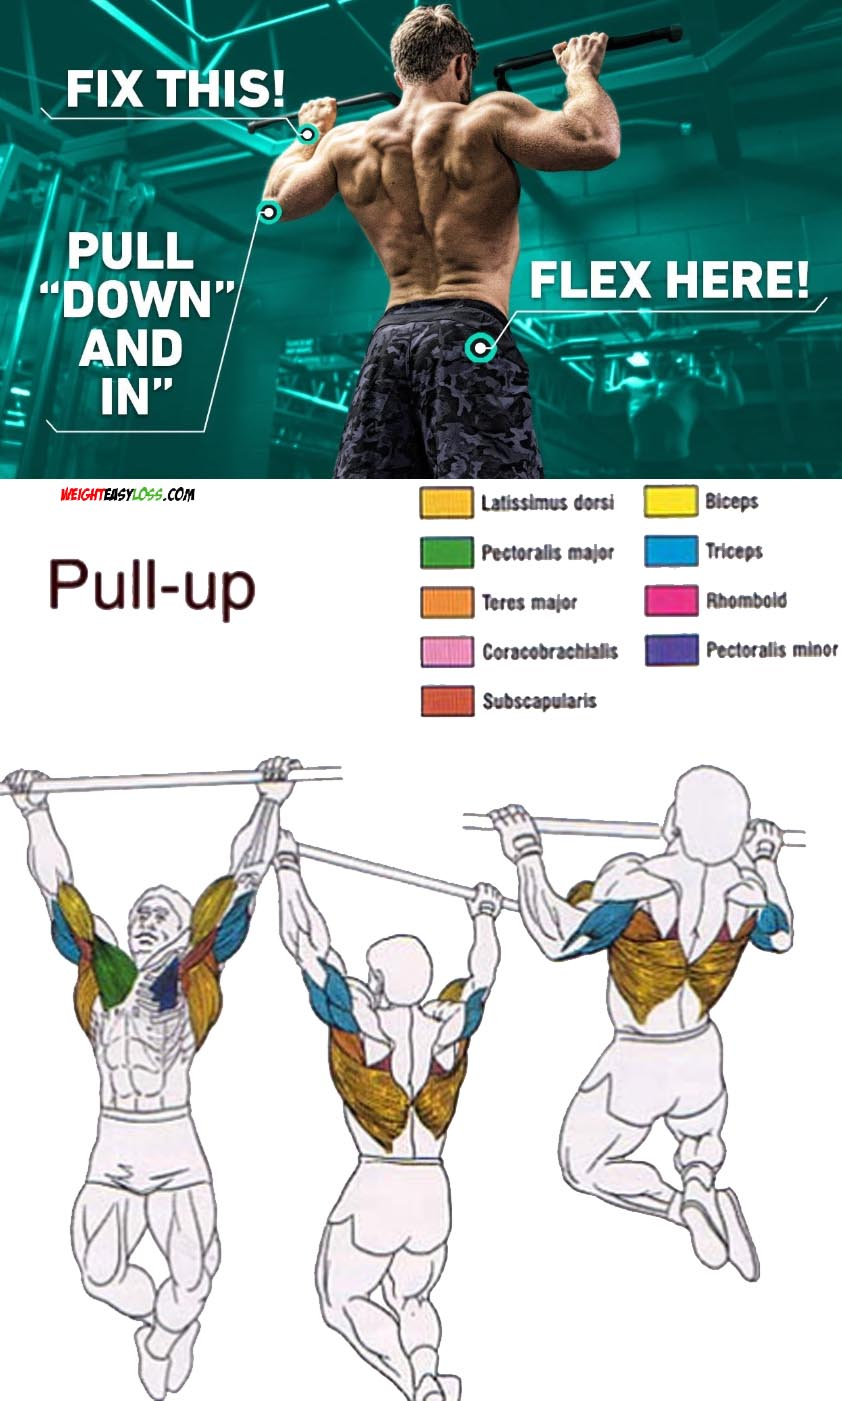 PULL UP TIPS